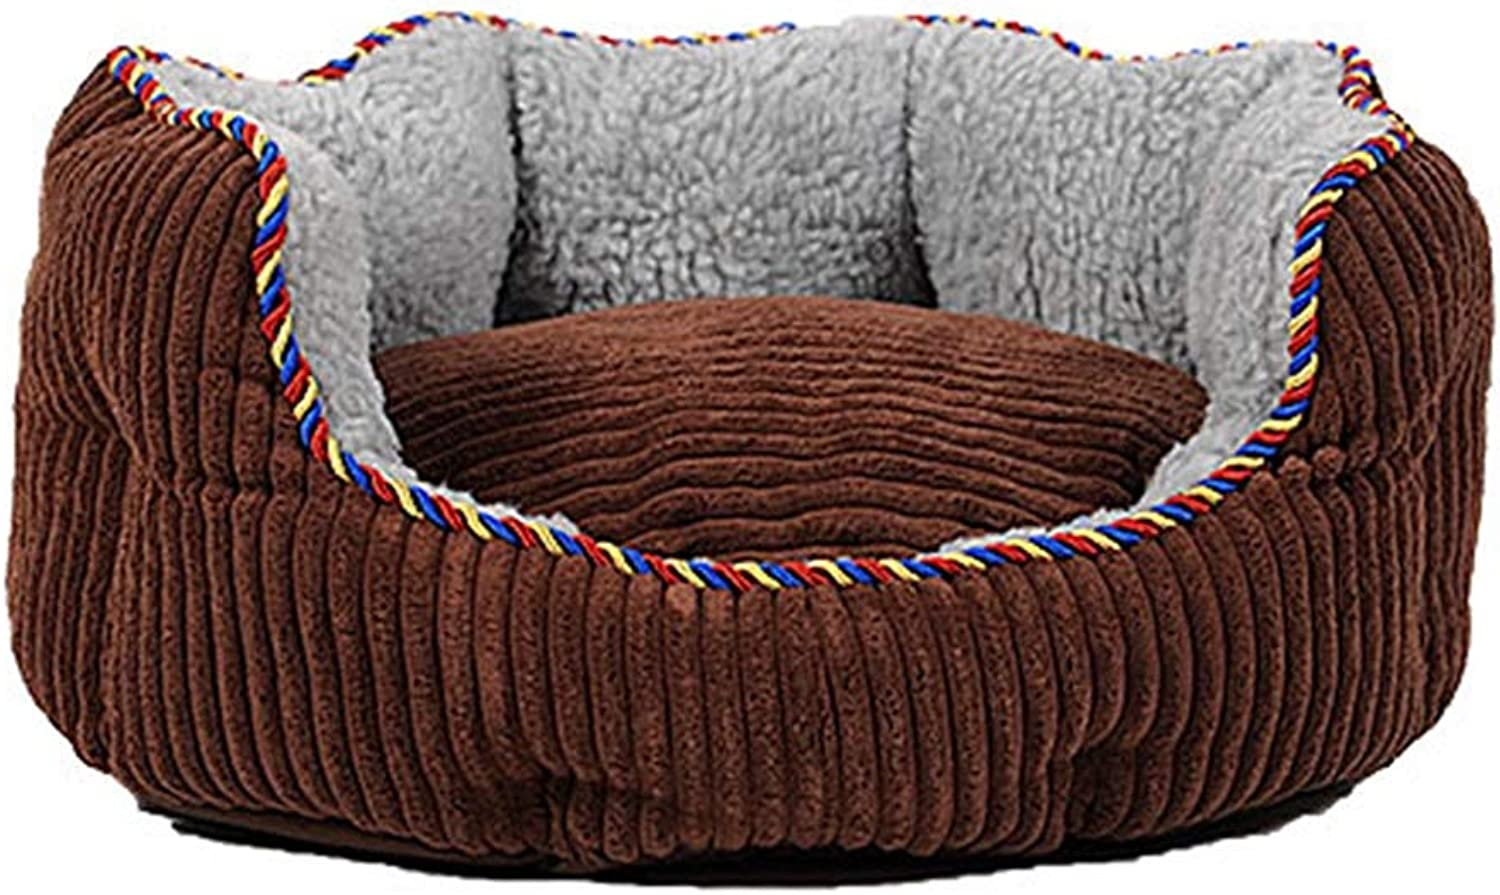 Pet house Pet Bed, Circular Wraparound Pet Sofa Comfortable Soft Dog Mattress Suitable For All Seasons (color   A, Size   Xl)